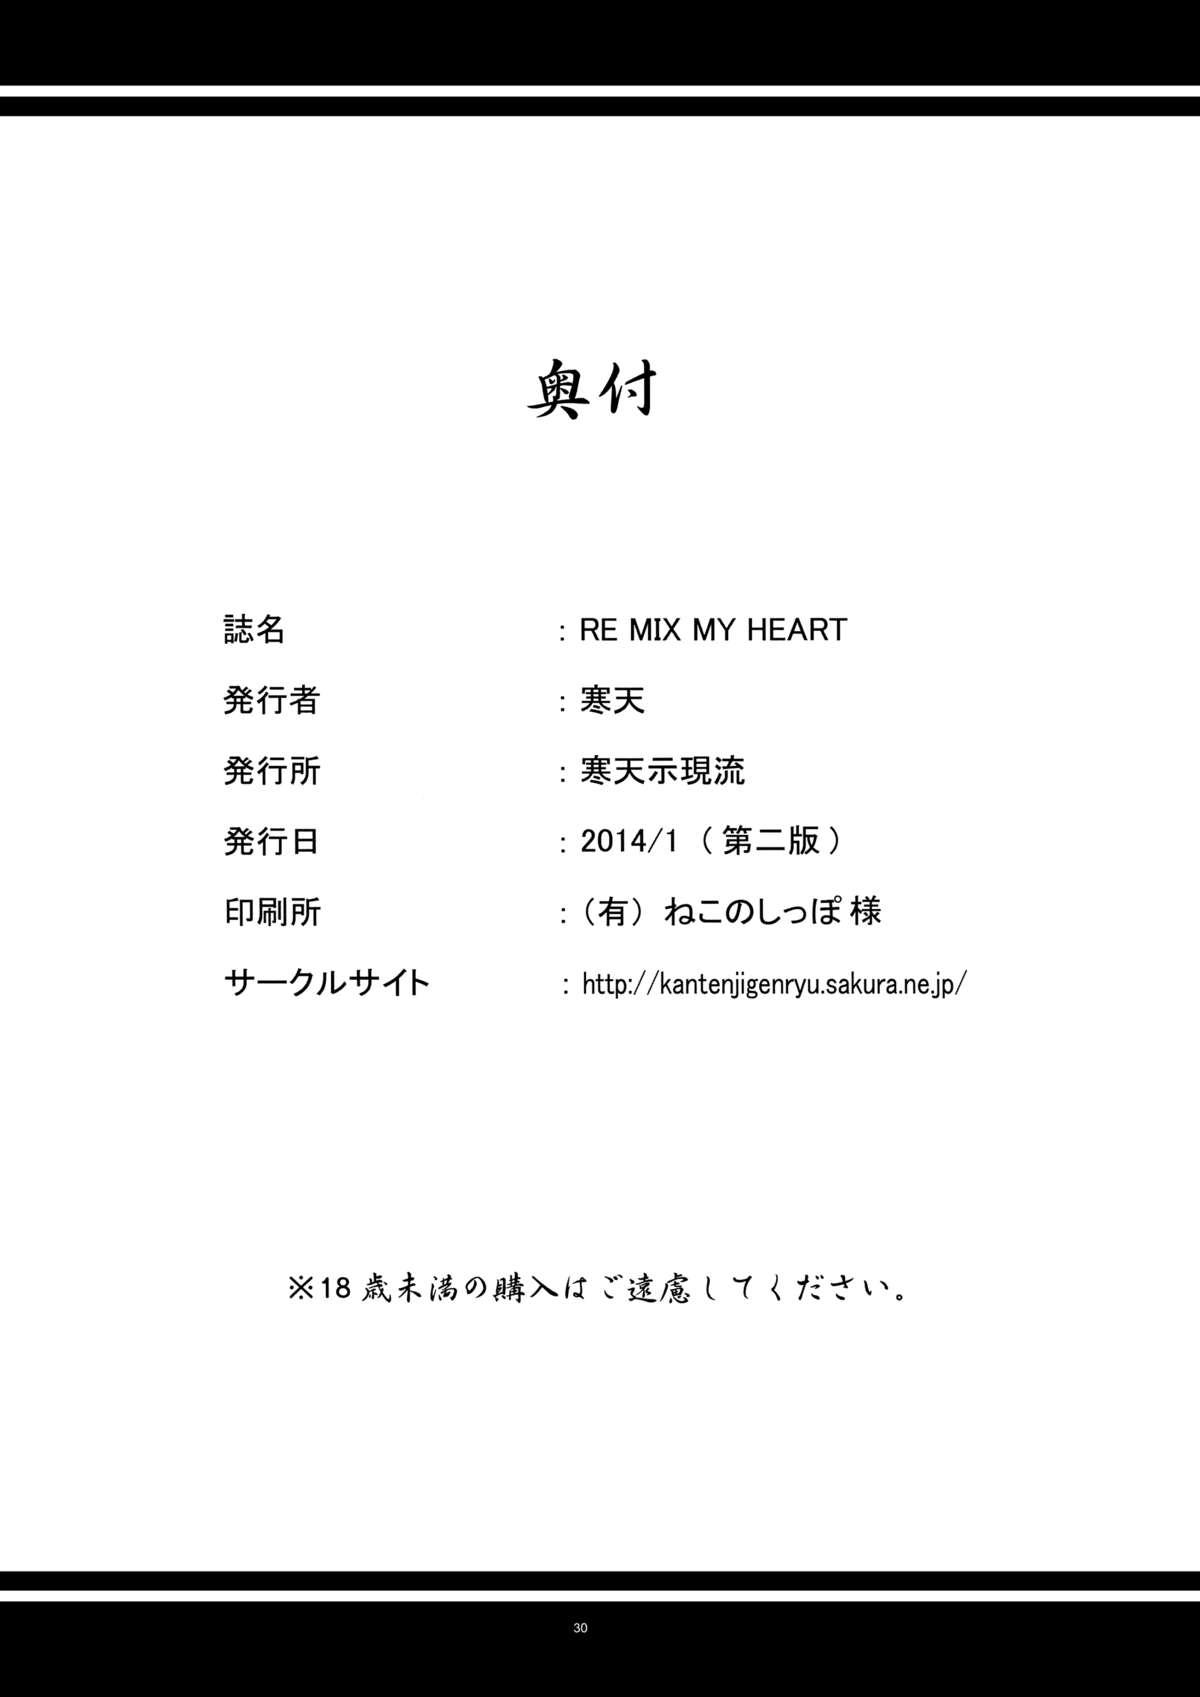 RE MIX MY HEART!! 29